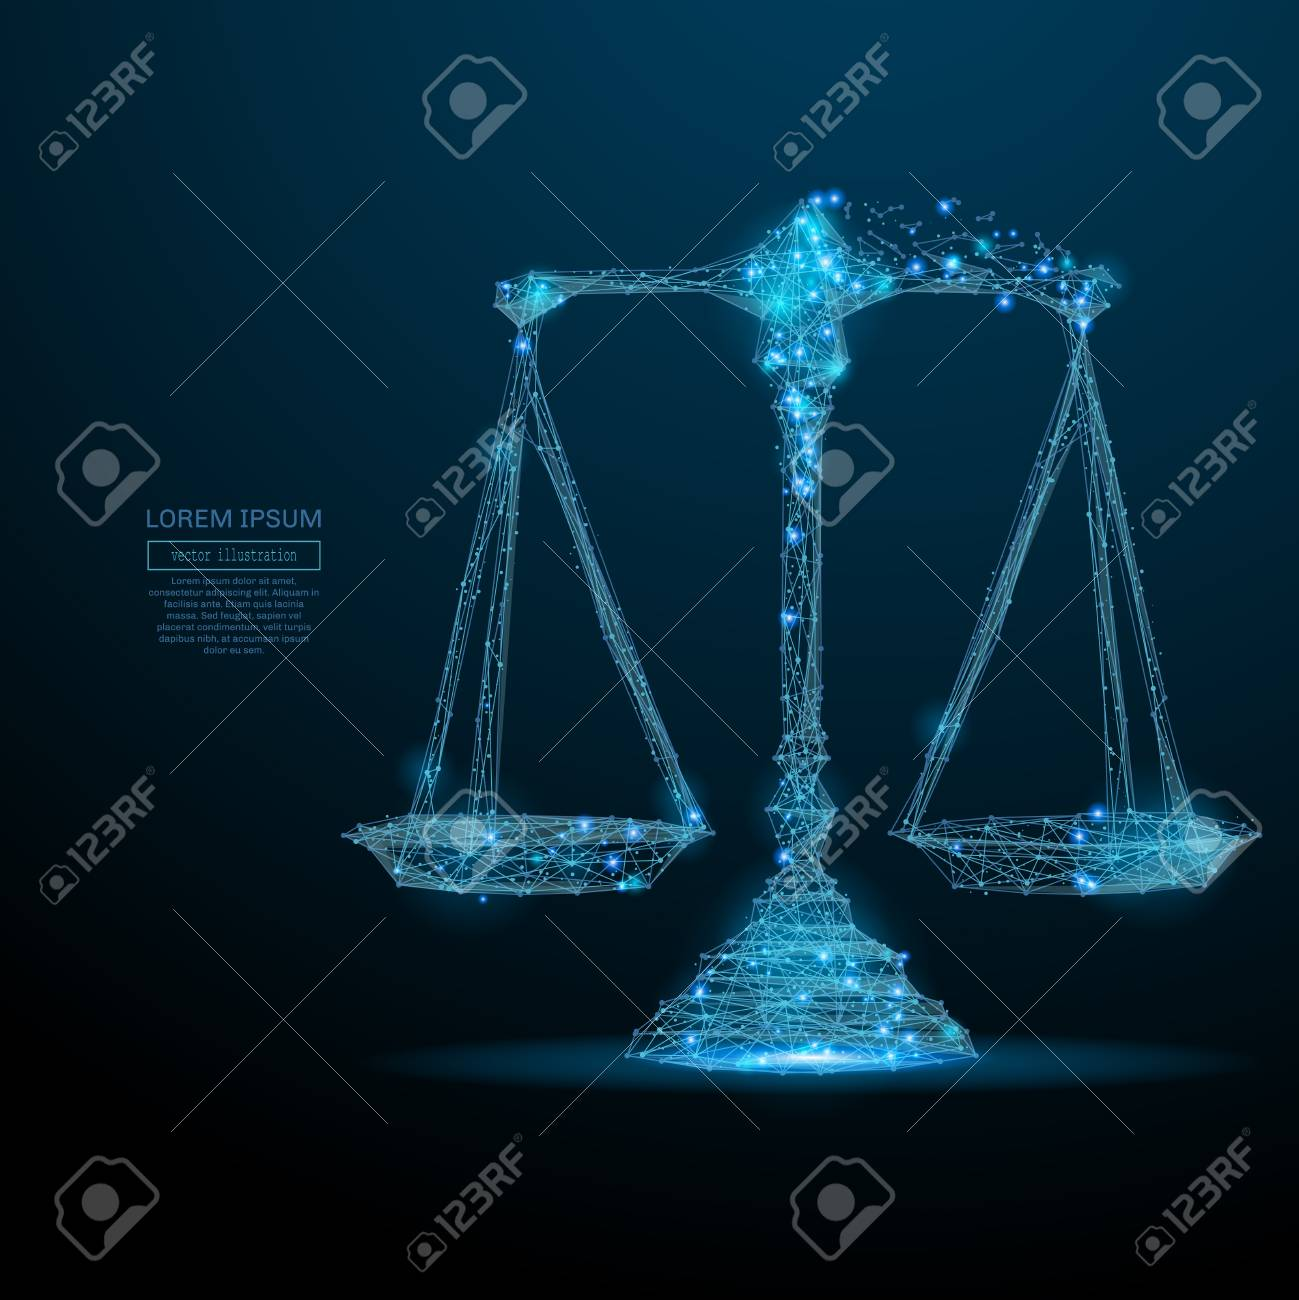 Abstract image of a scales in the form of a starry sky or space, consisting of points, lines, and shapes in the form of planets, stars and the universe. Vector wireframe concept. - 75837846